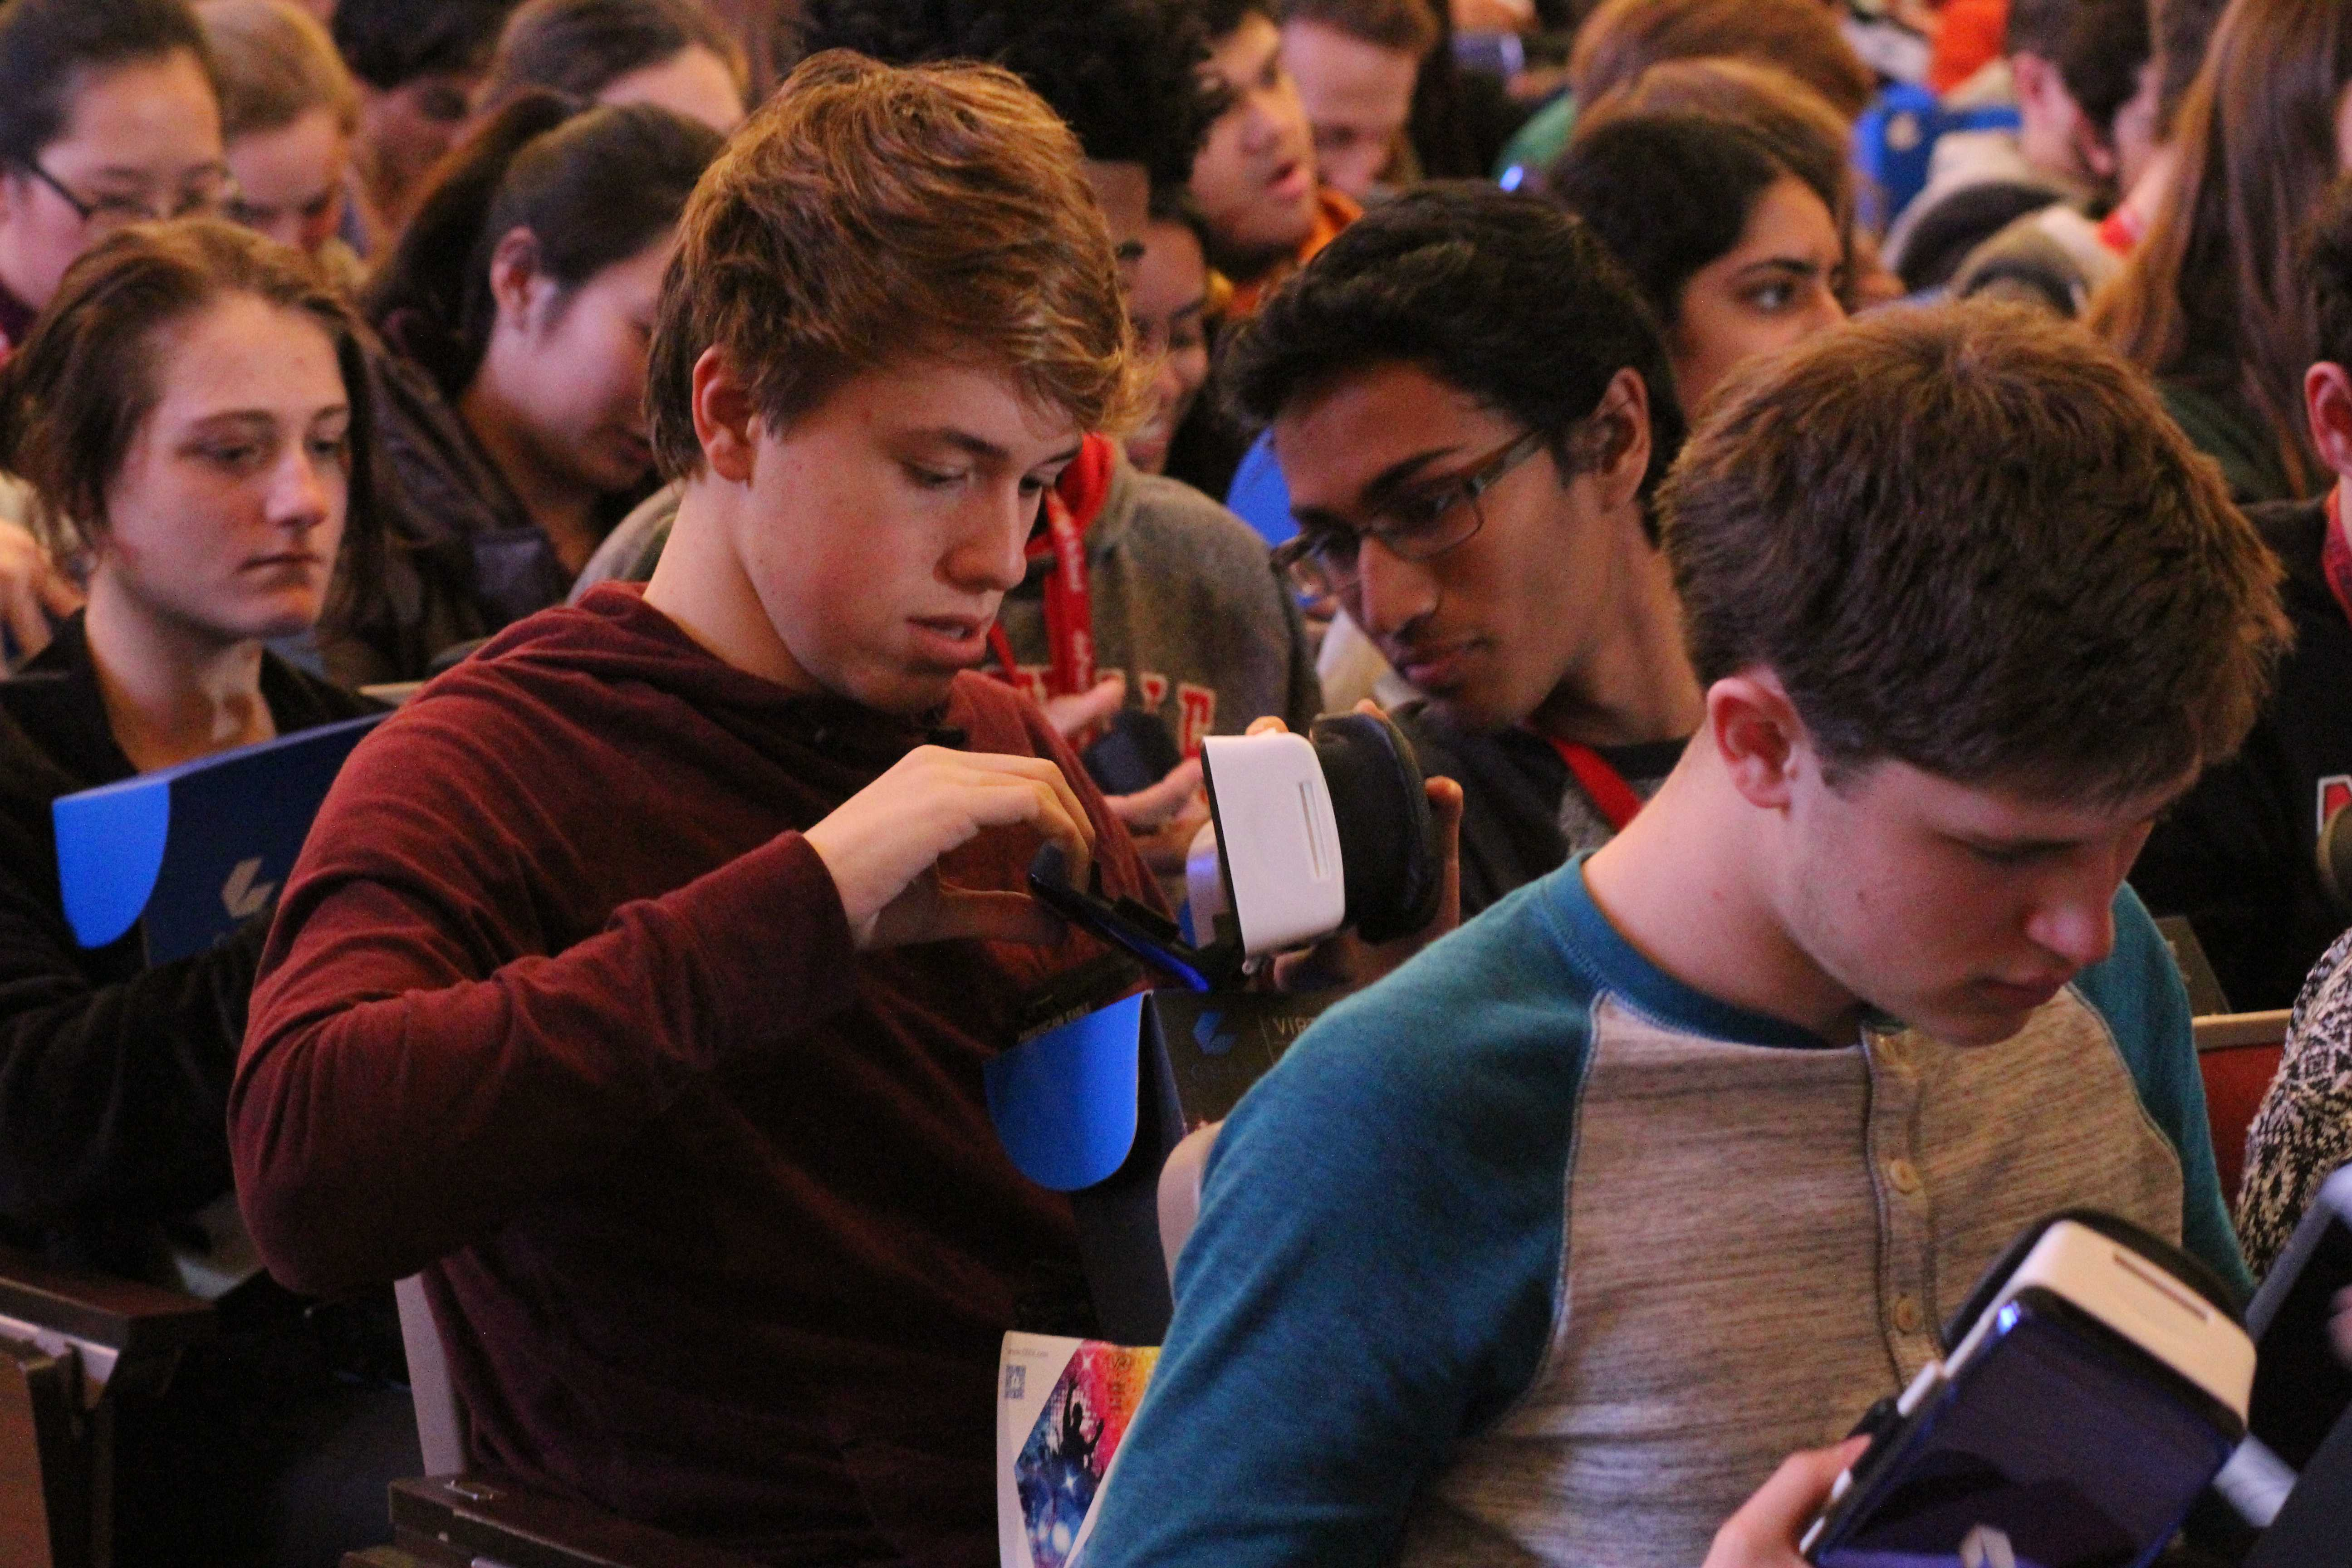 Student opening up new virtual reality headset. Photo by Cicada Hoyt